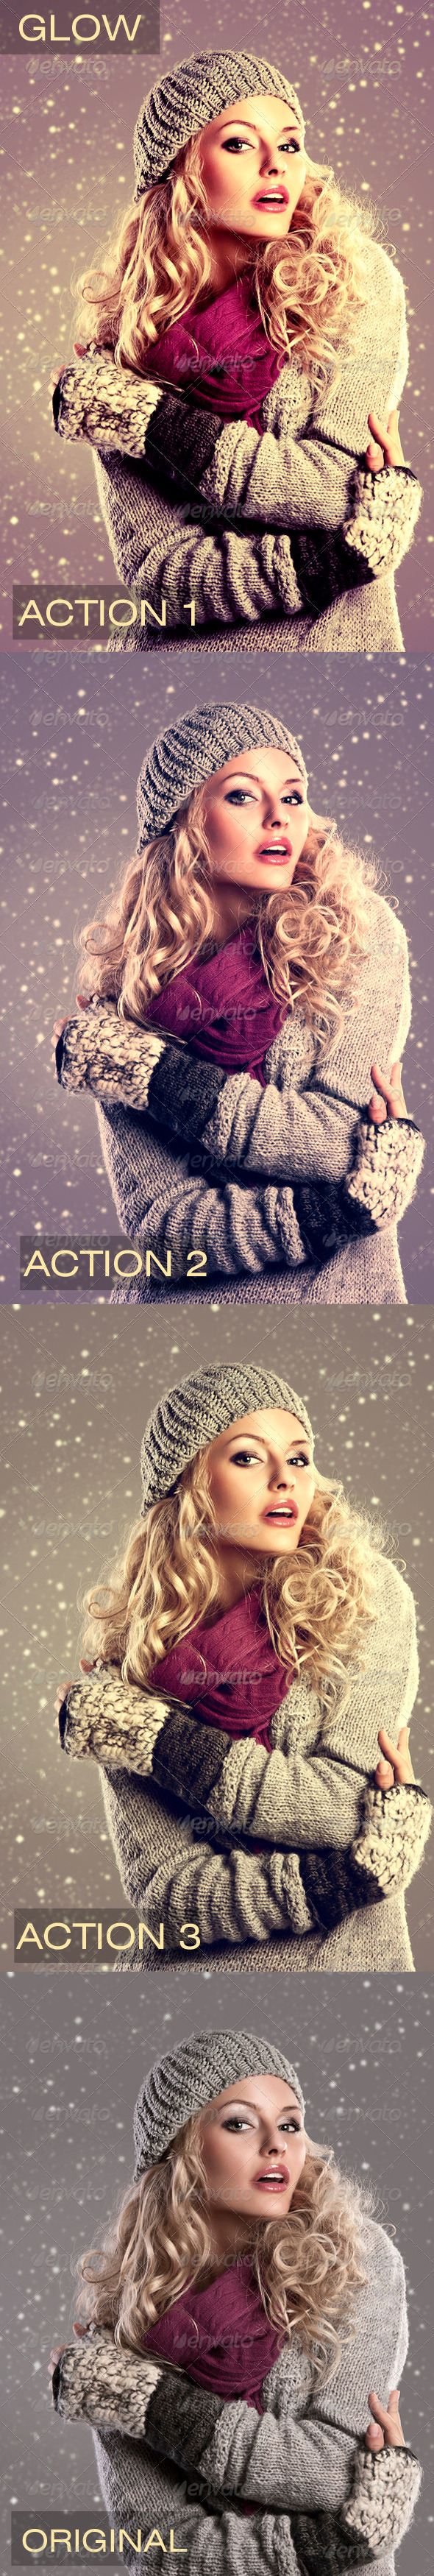 GraphicRiver Photo Effect PS Action 11 6328553